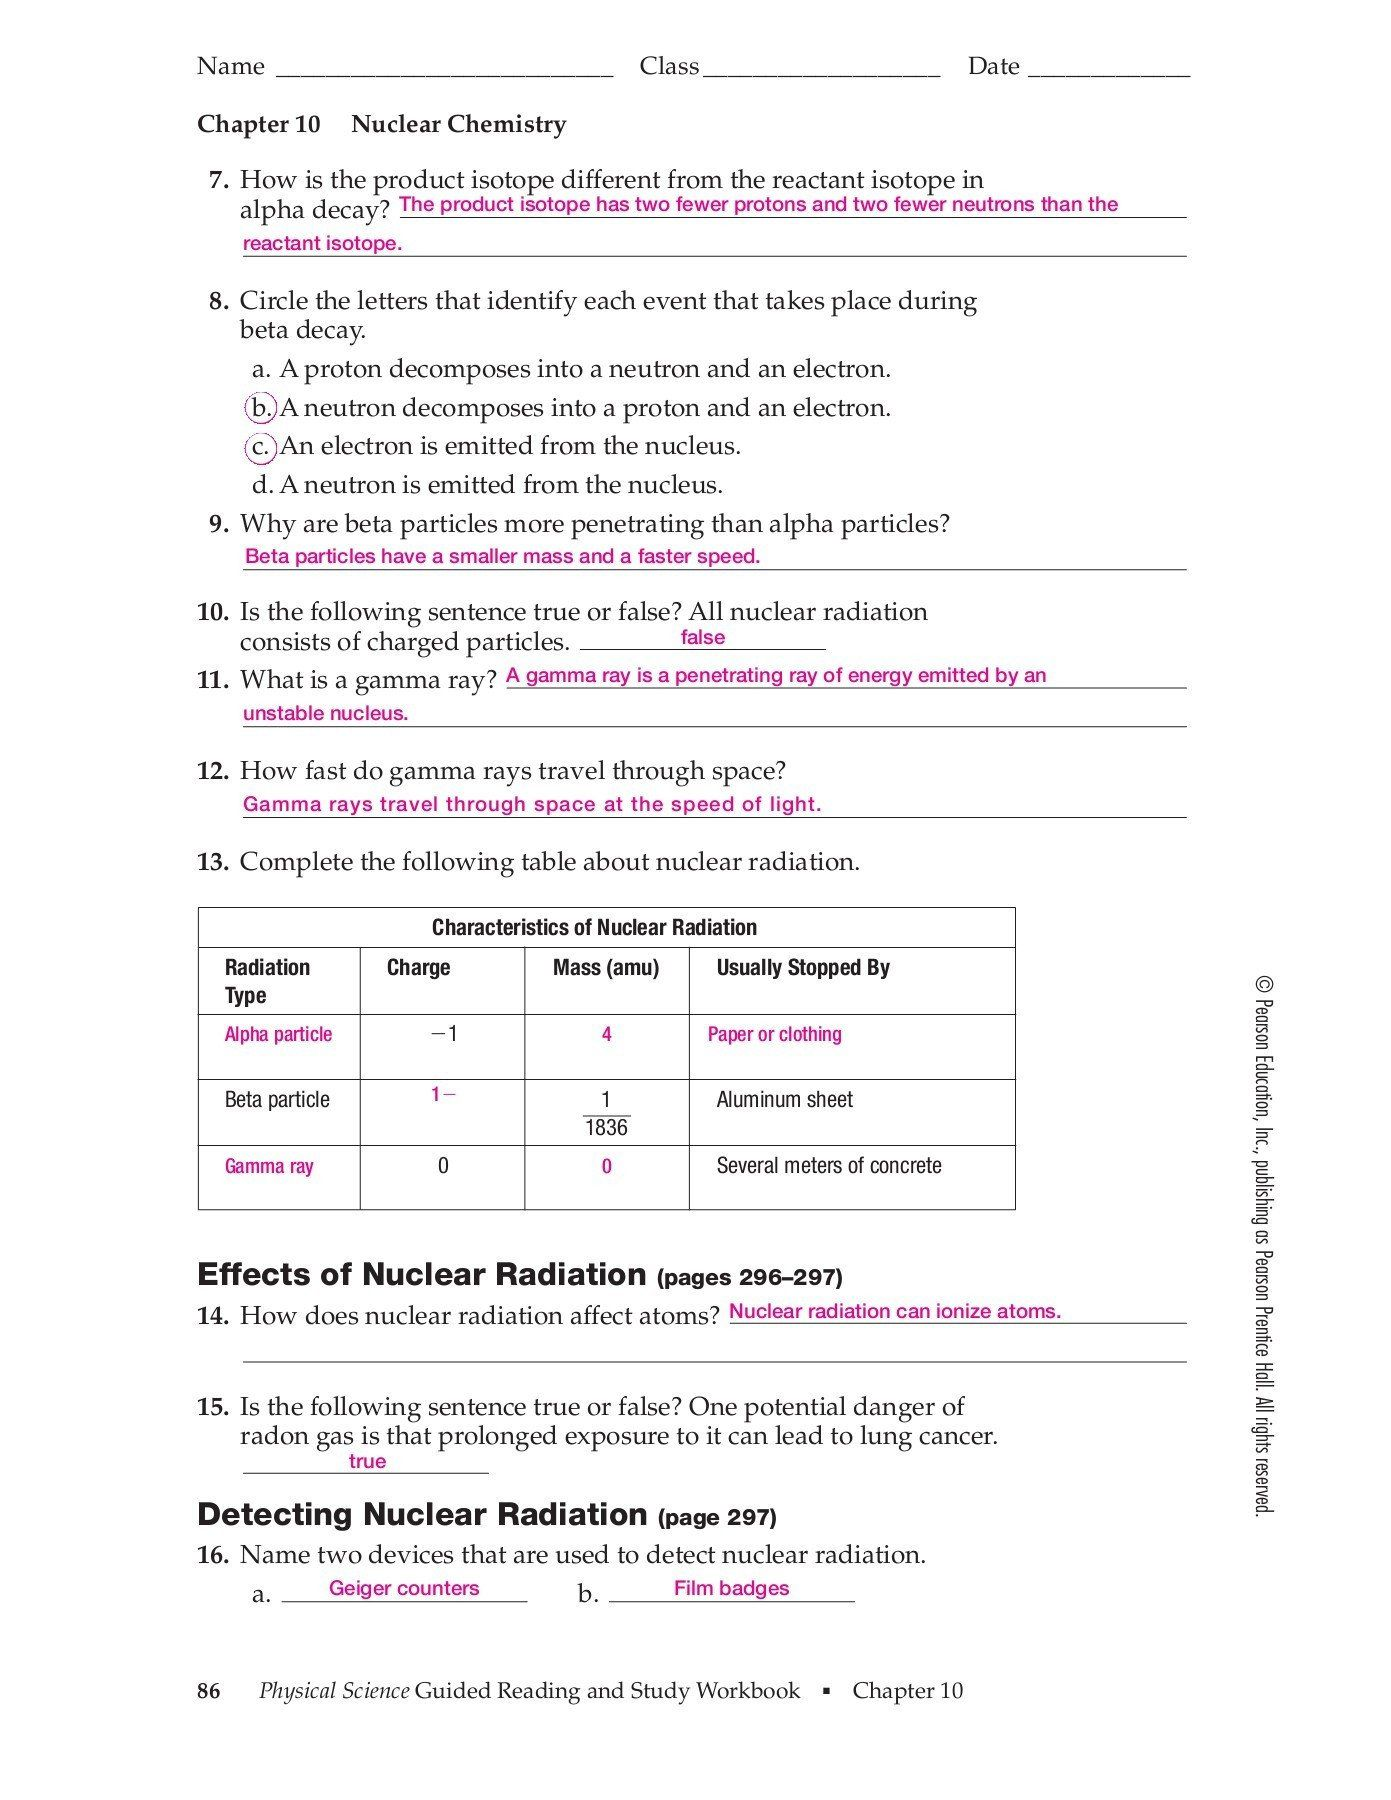 Nuclear Decay Worksheet Answers Key Chapter 10 Nuclear Chemistry Section 10 1 Radioac In 2020 Chemistry Worksheets Text Structure Worksheets Kids Worksheets Printables